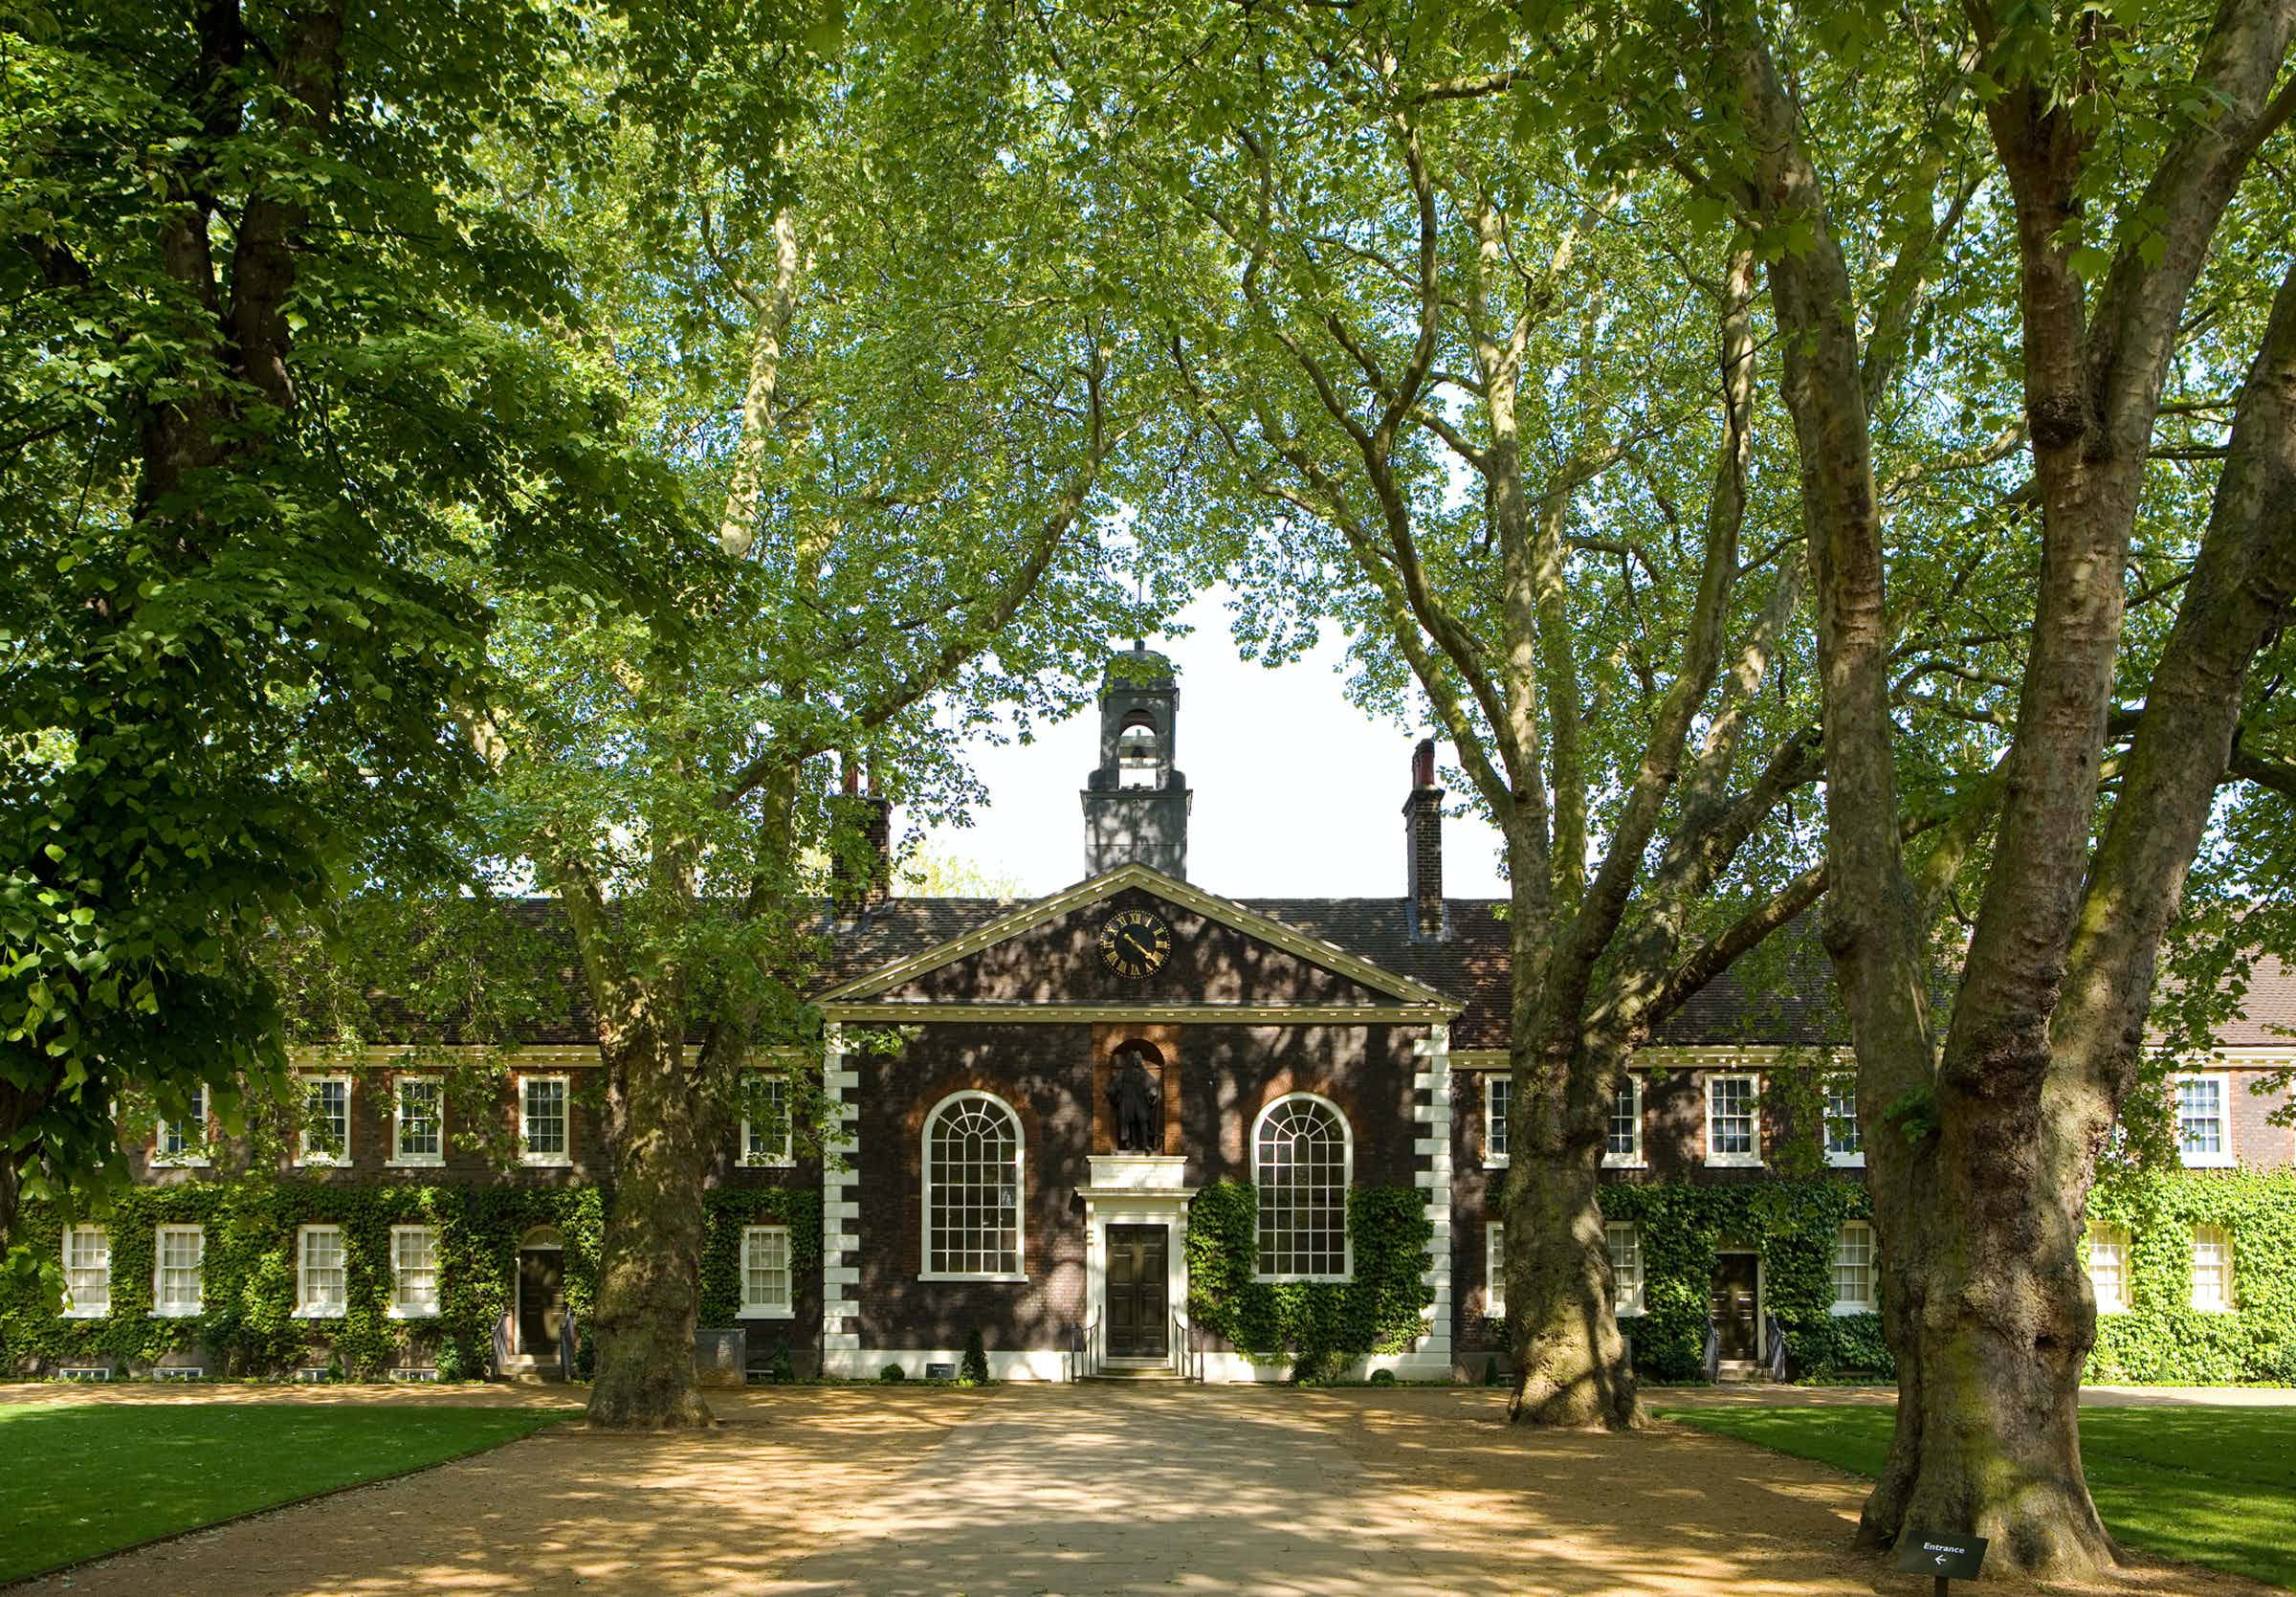 Shoreditch Gardens, The Geffrye Museum